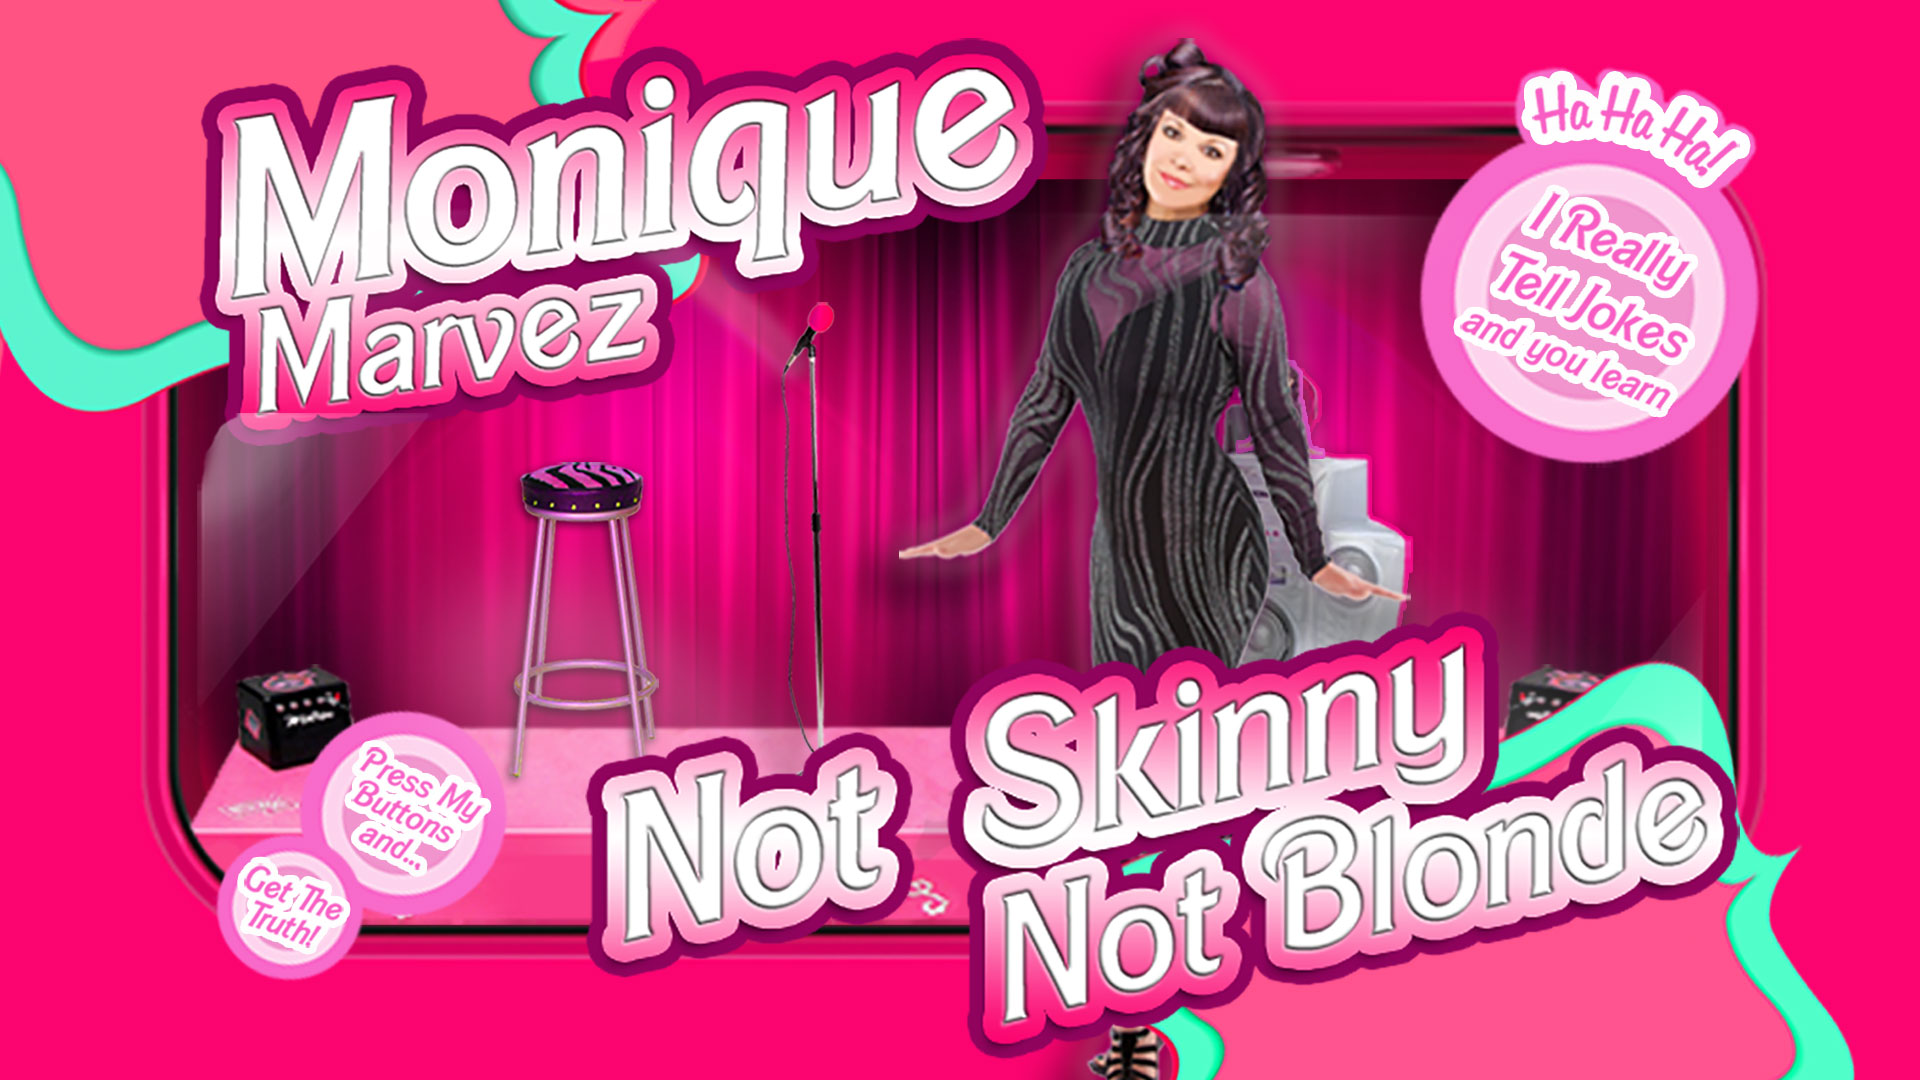 Monique Marvez: Not Skinny Not Blonde